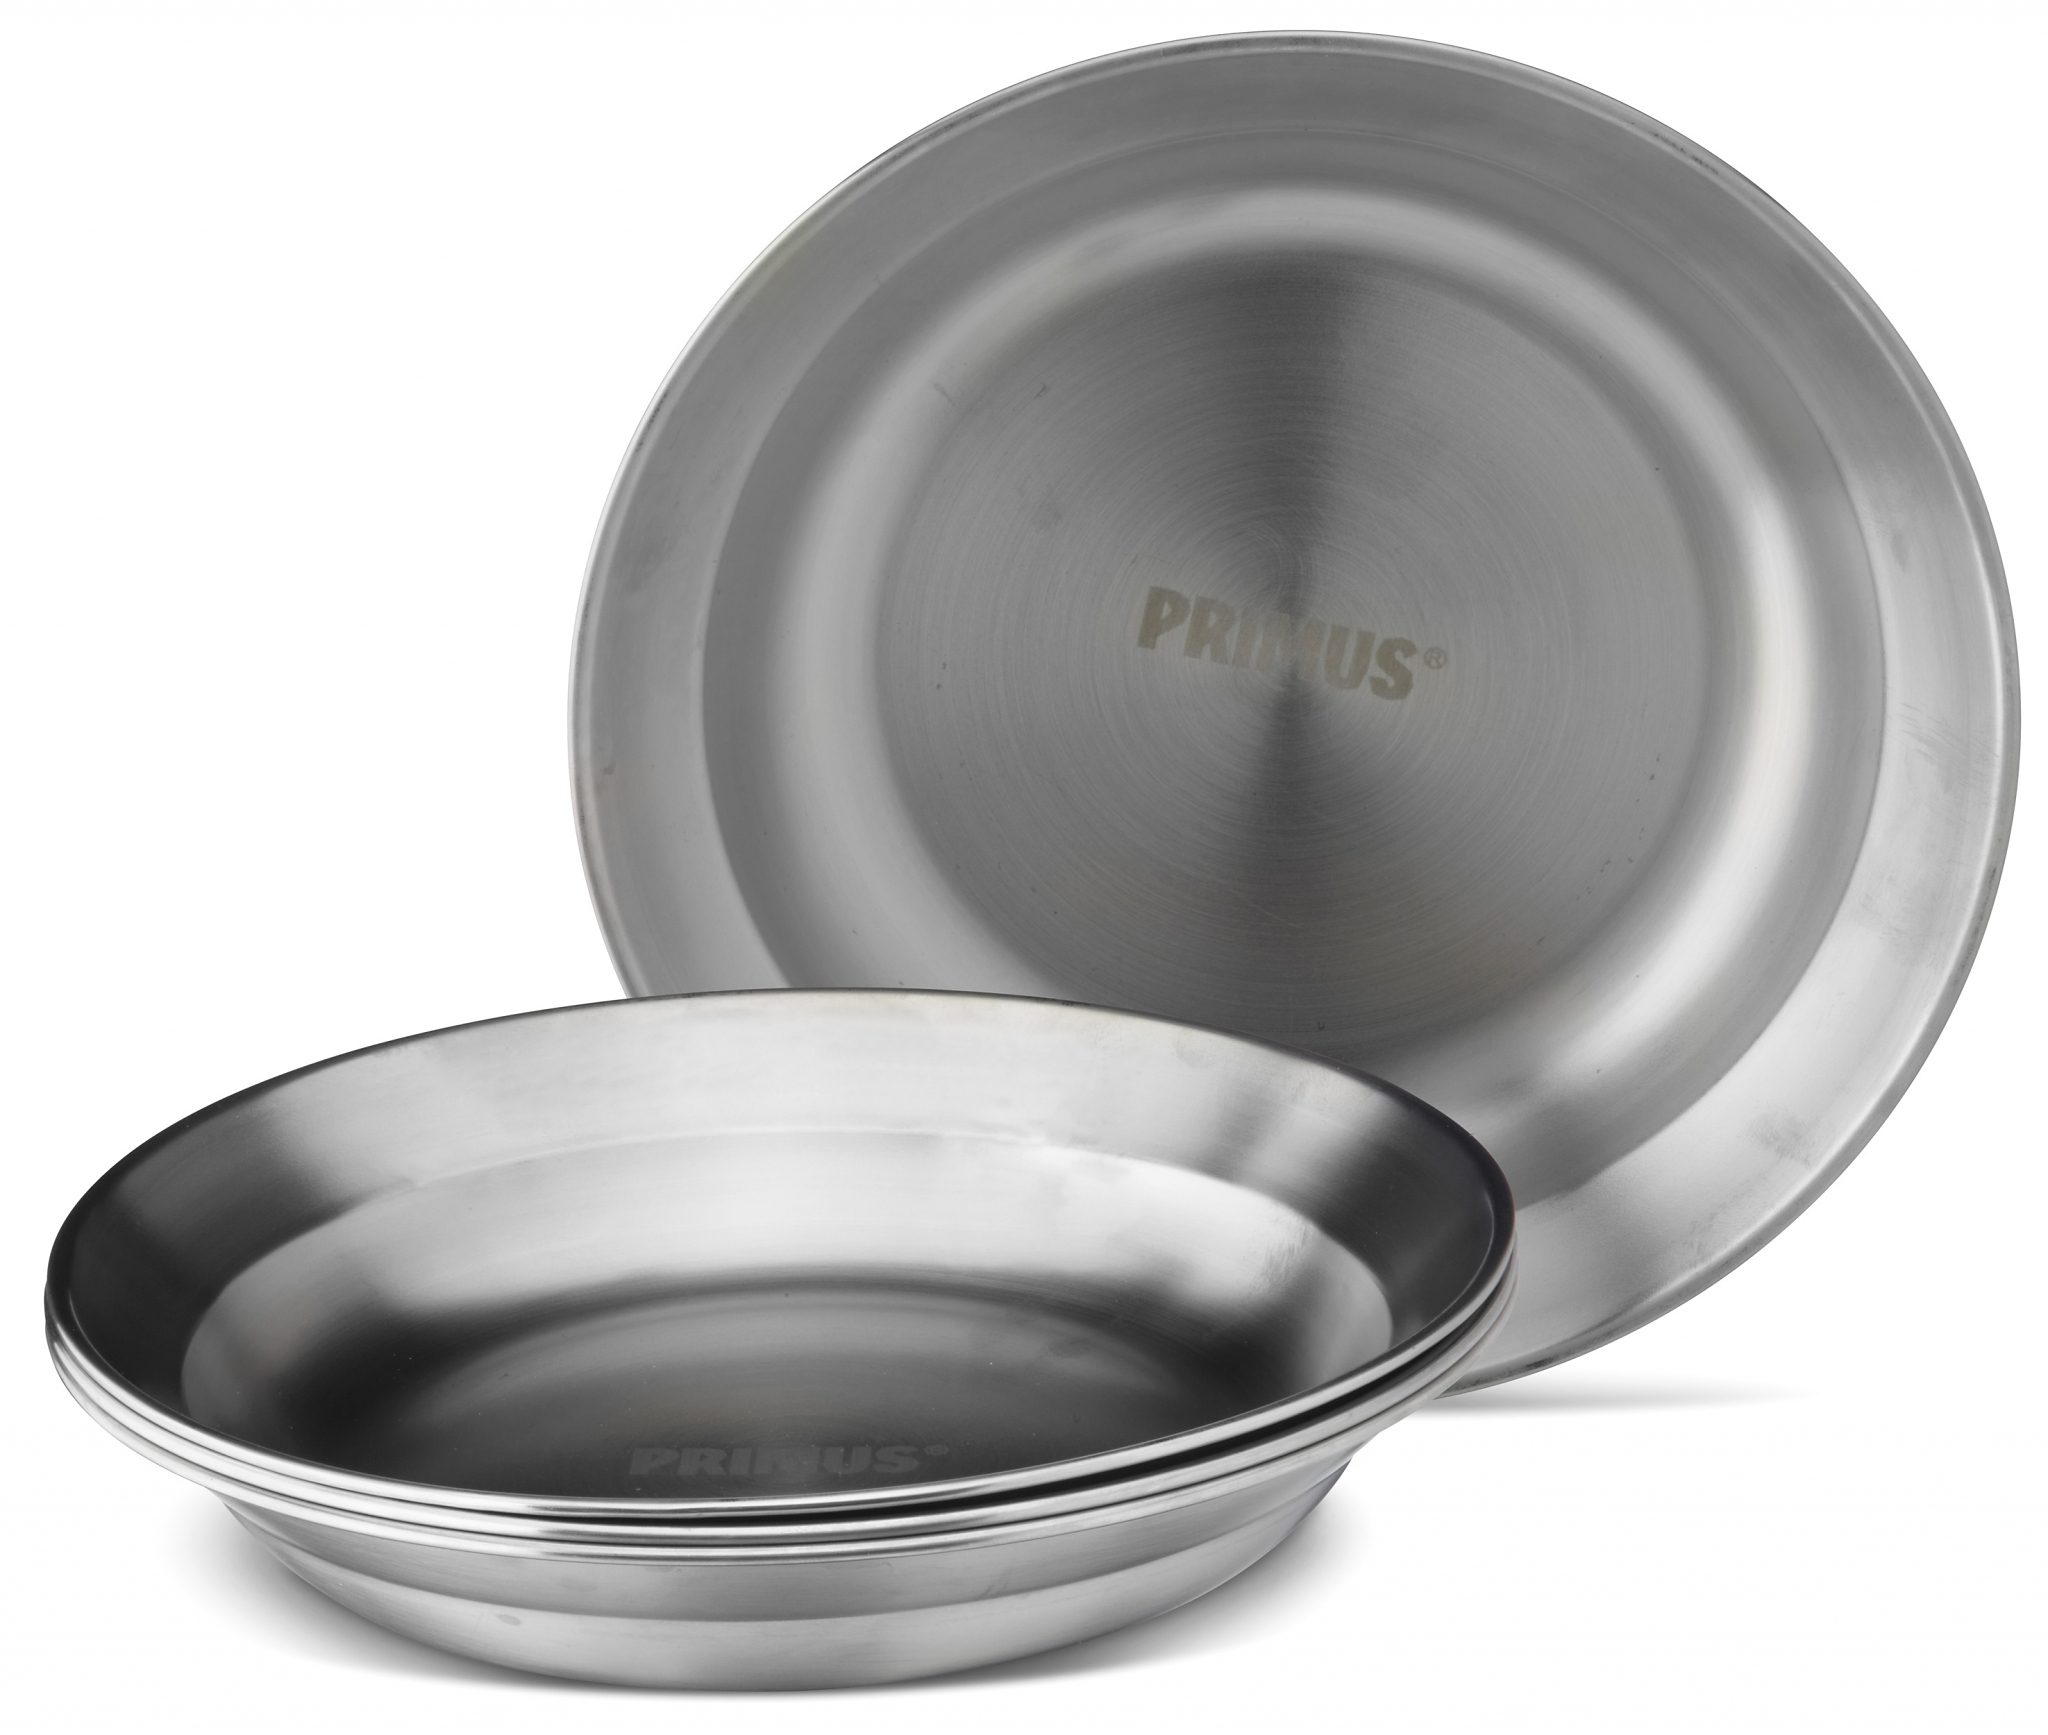 Primus Camping-Geschirr »CampFire Plate Stainless Steel«